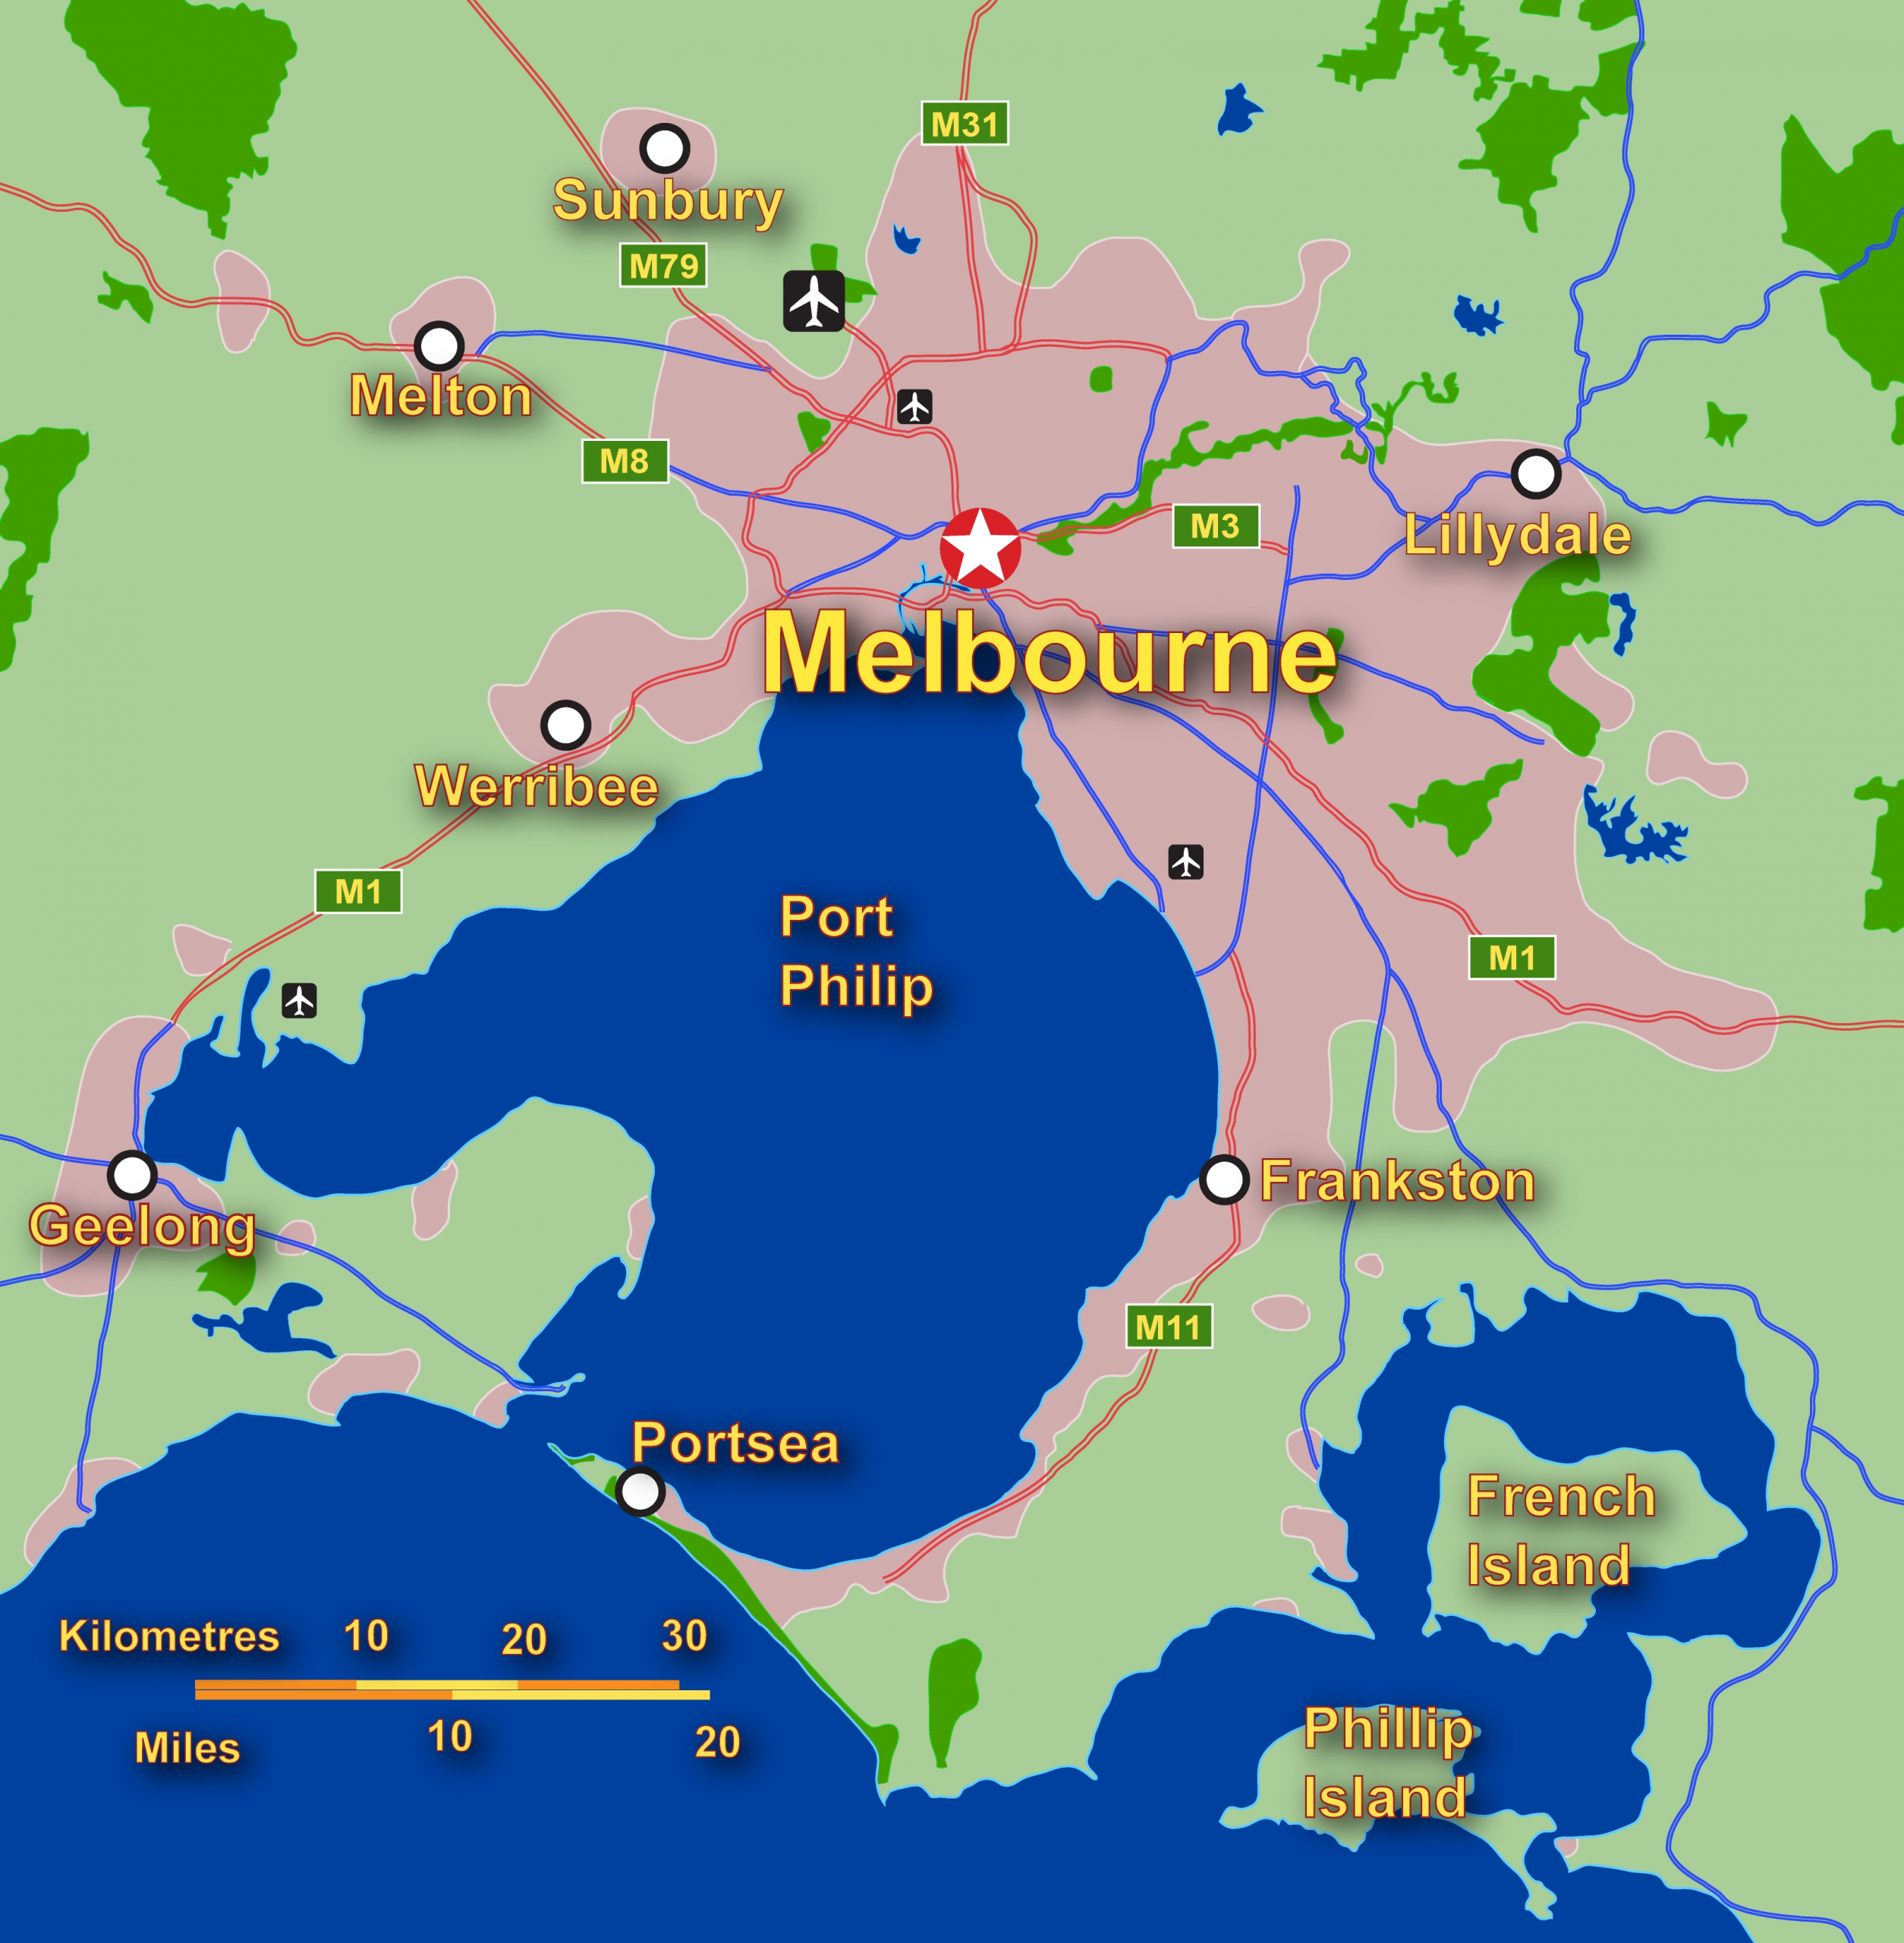 Melbourne Map ~ World Of Map intended for Australia Map With Cities Melbourne